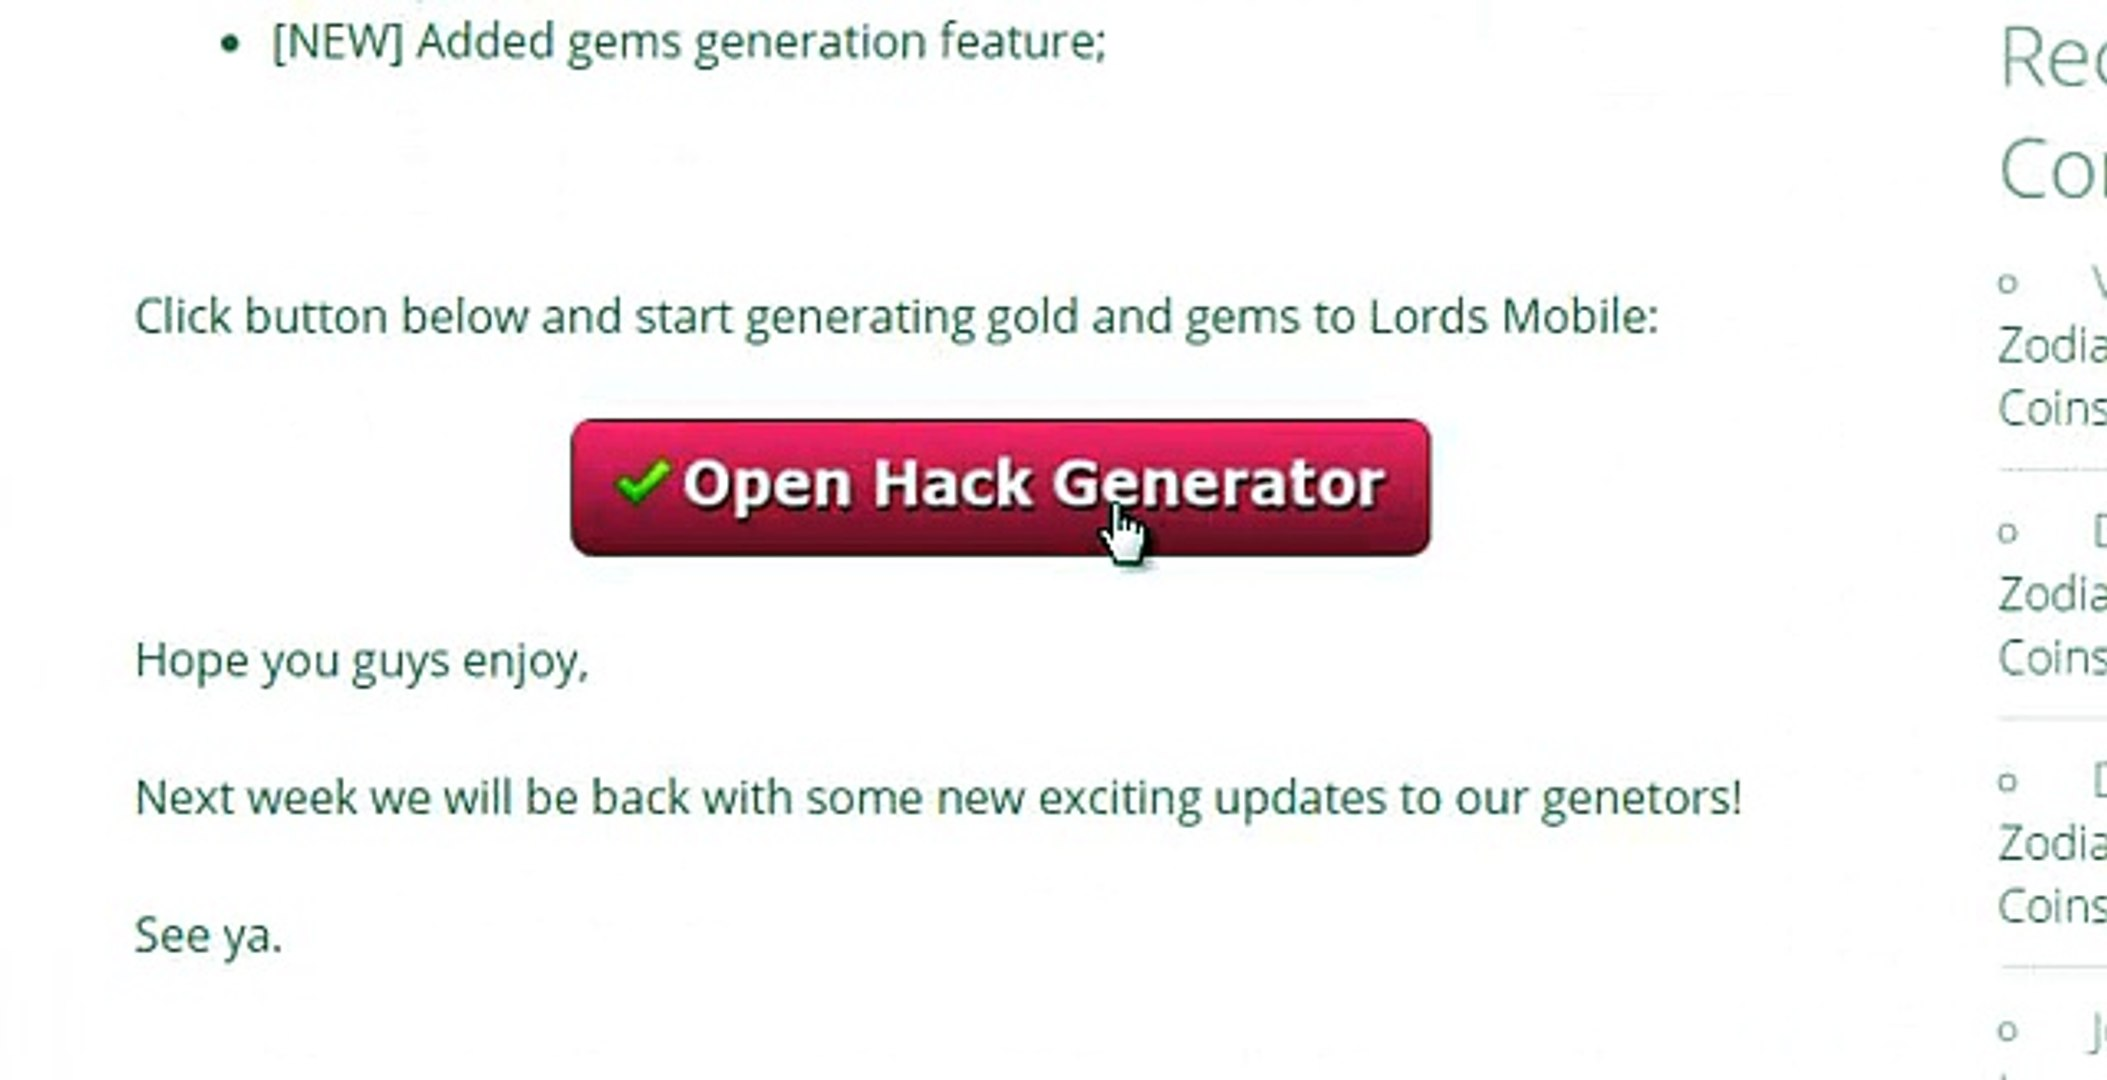 Lords Mobile: FREE Gold and Gems (Online Generator)